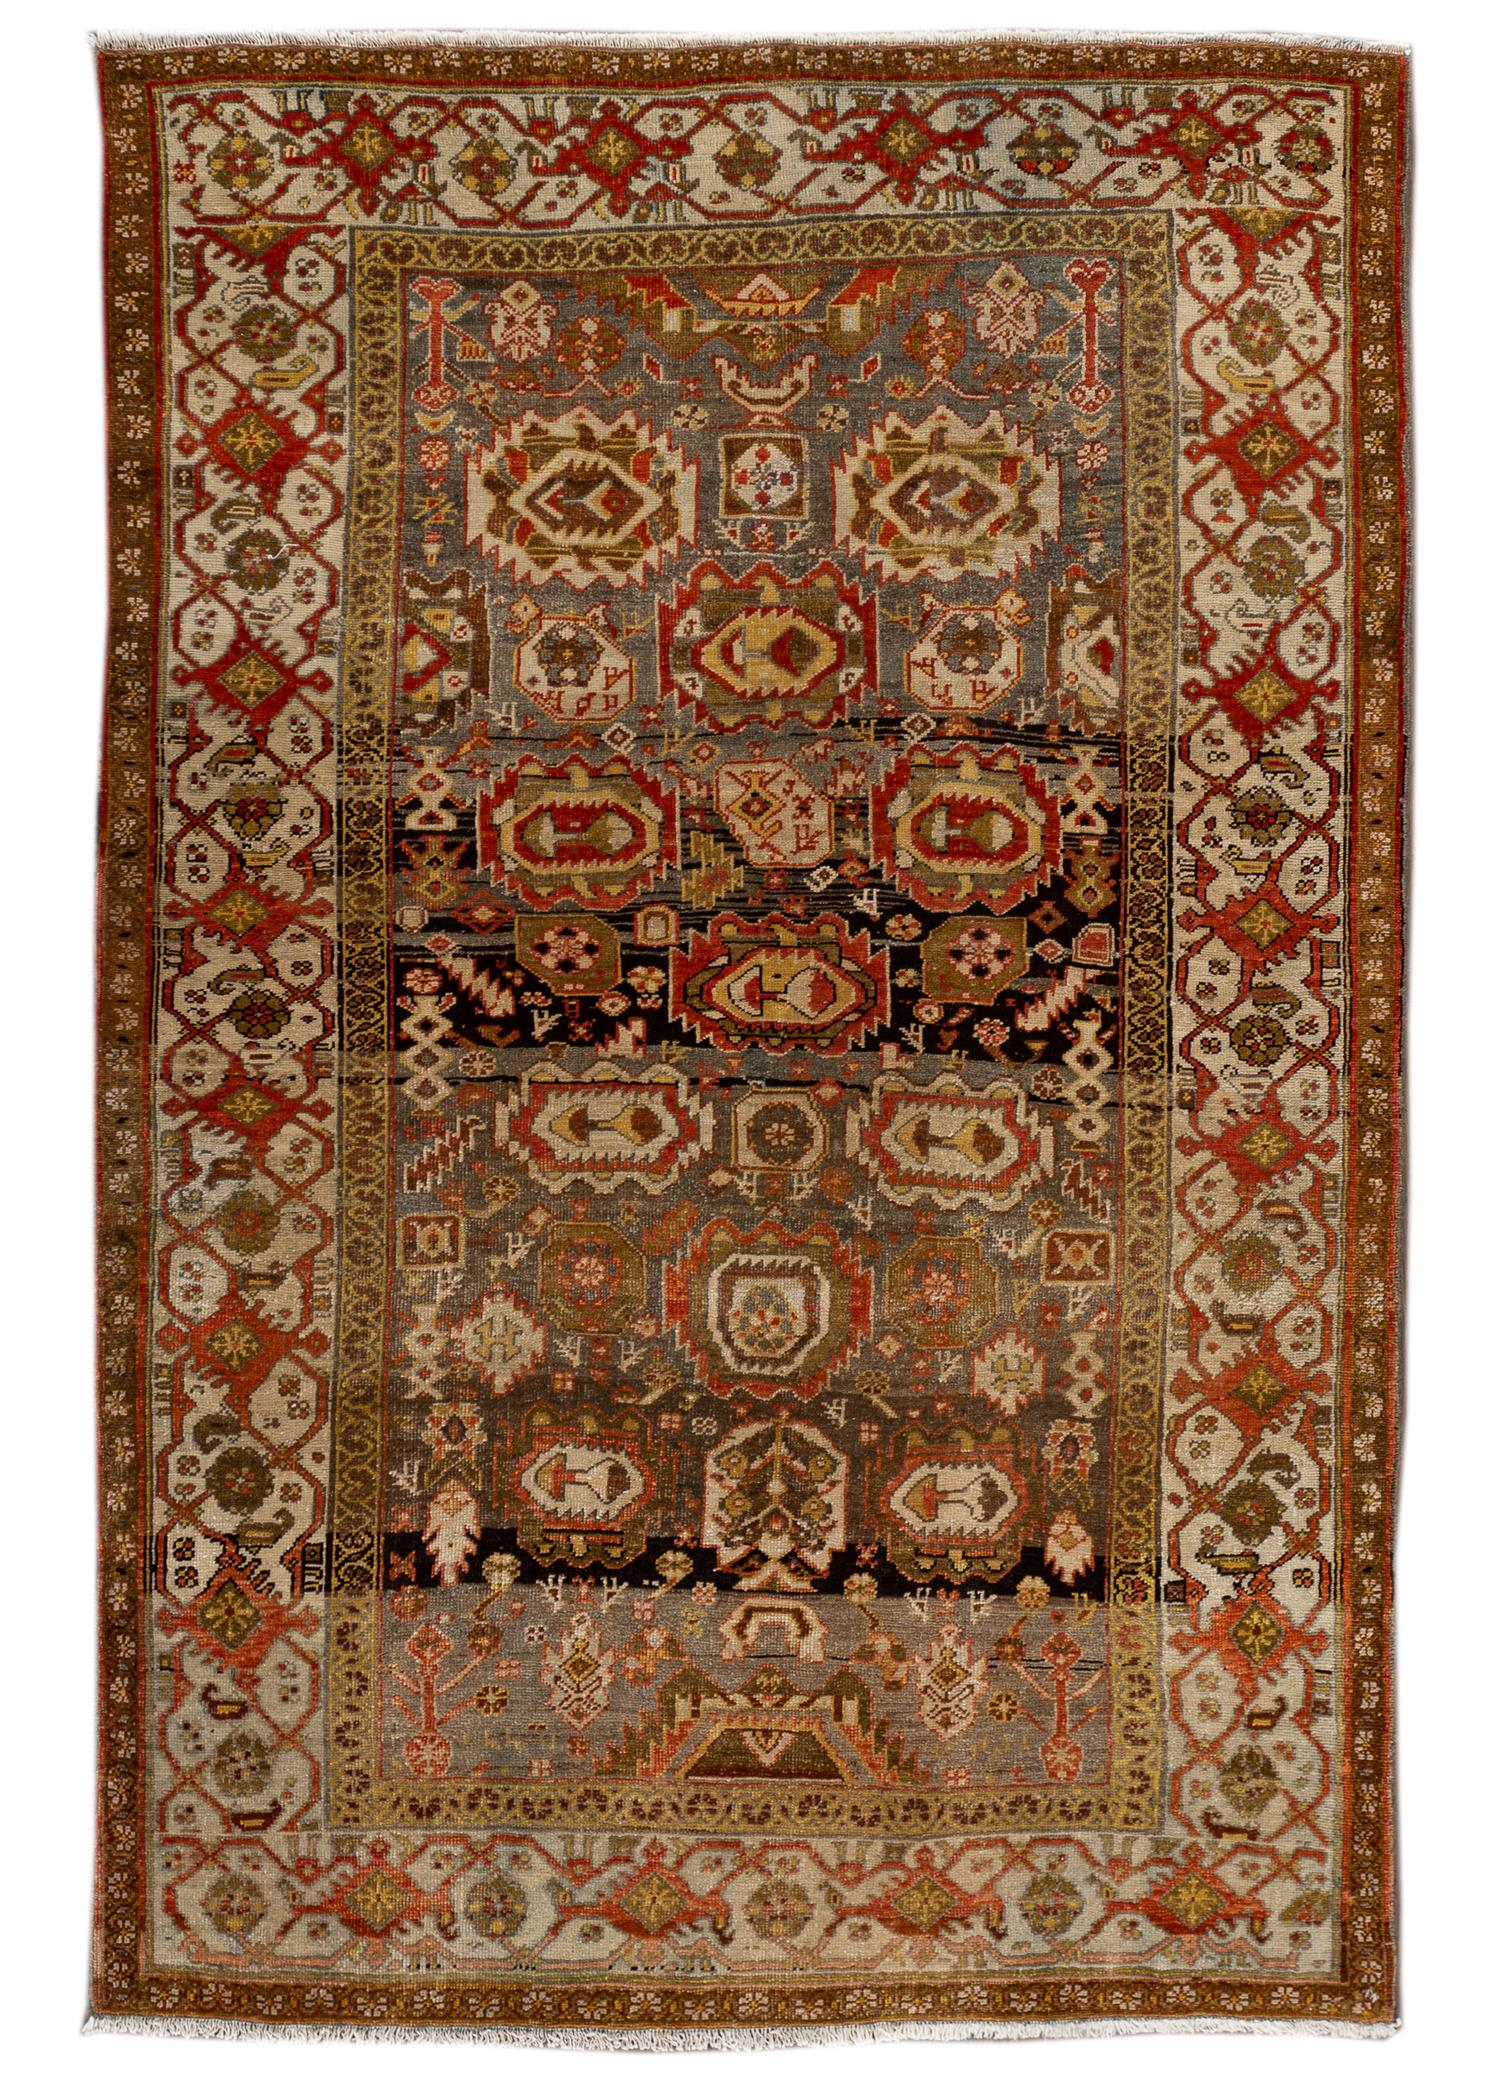 Antique Bidjar Rug, #10235257, 4X7